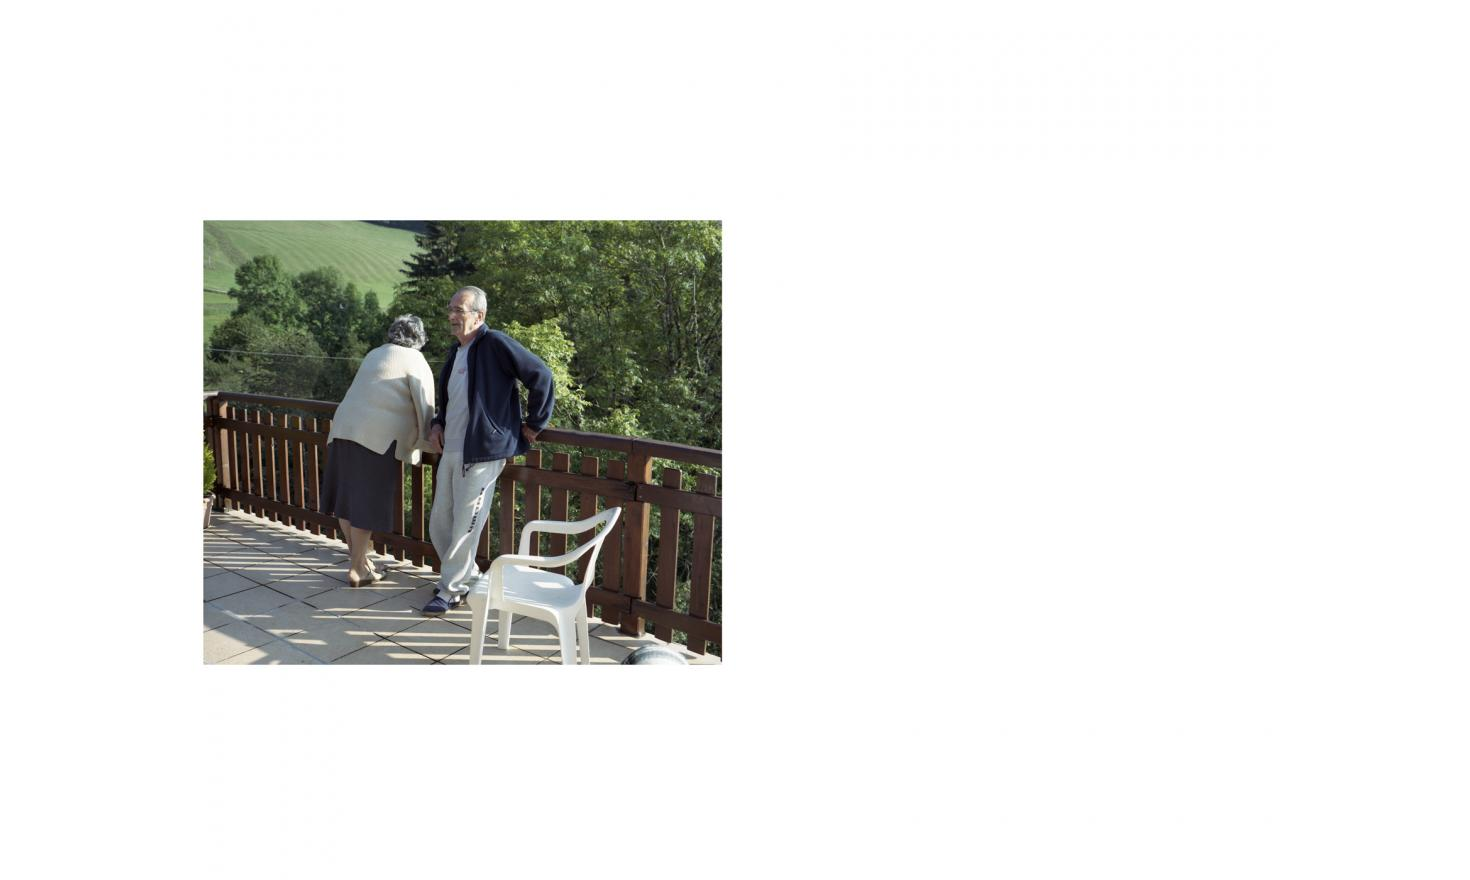 Robert and Raymonde, widower and widow, partner since 2009 in the Vercors, France 26th of September 2014